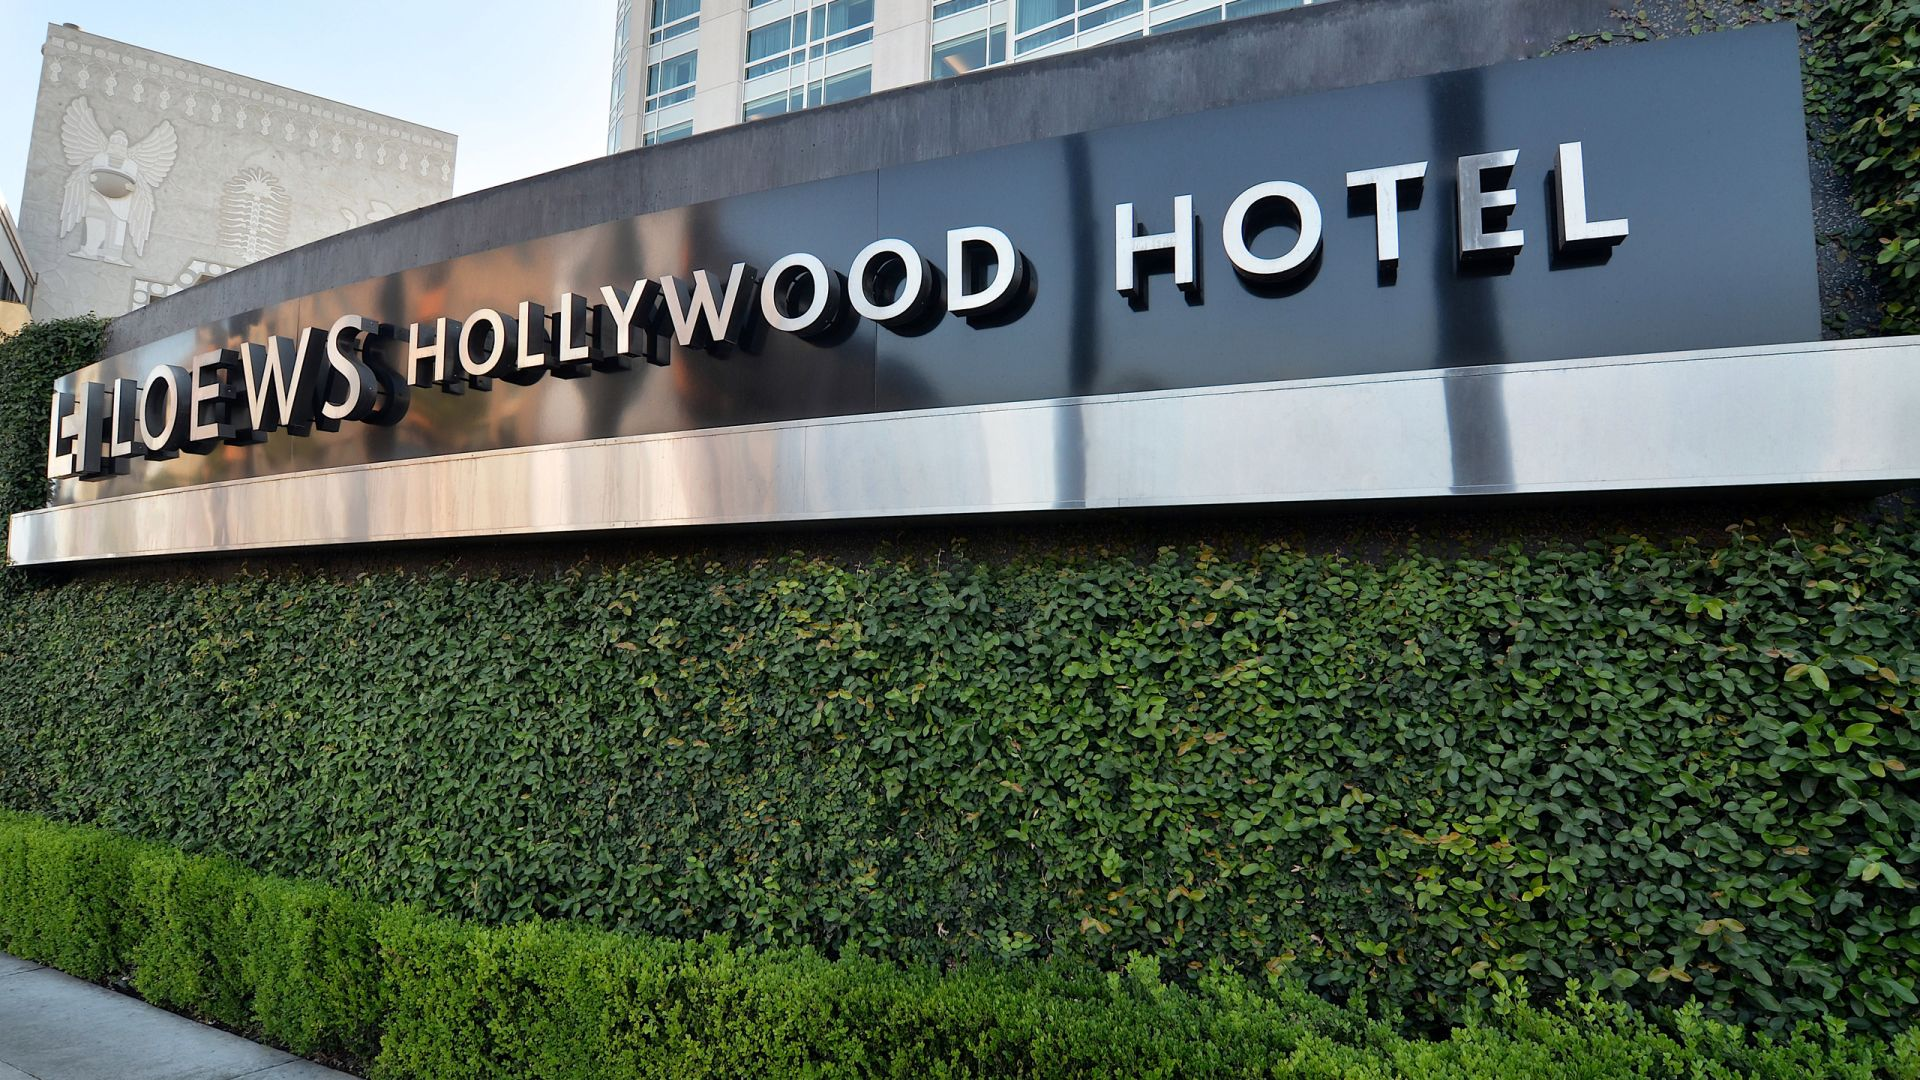 Loews Hollywood Hotel exterior